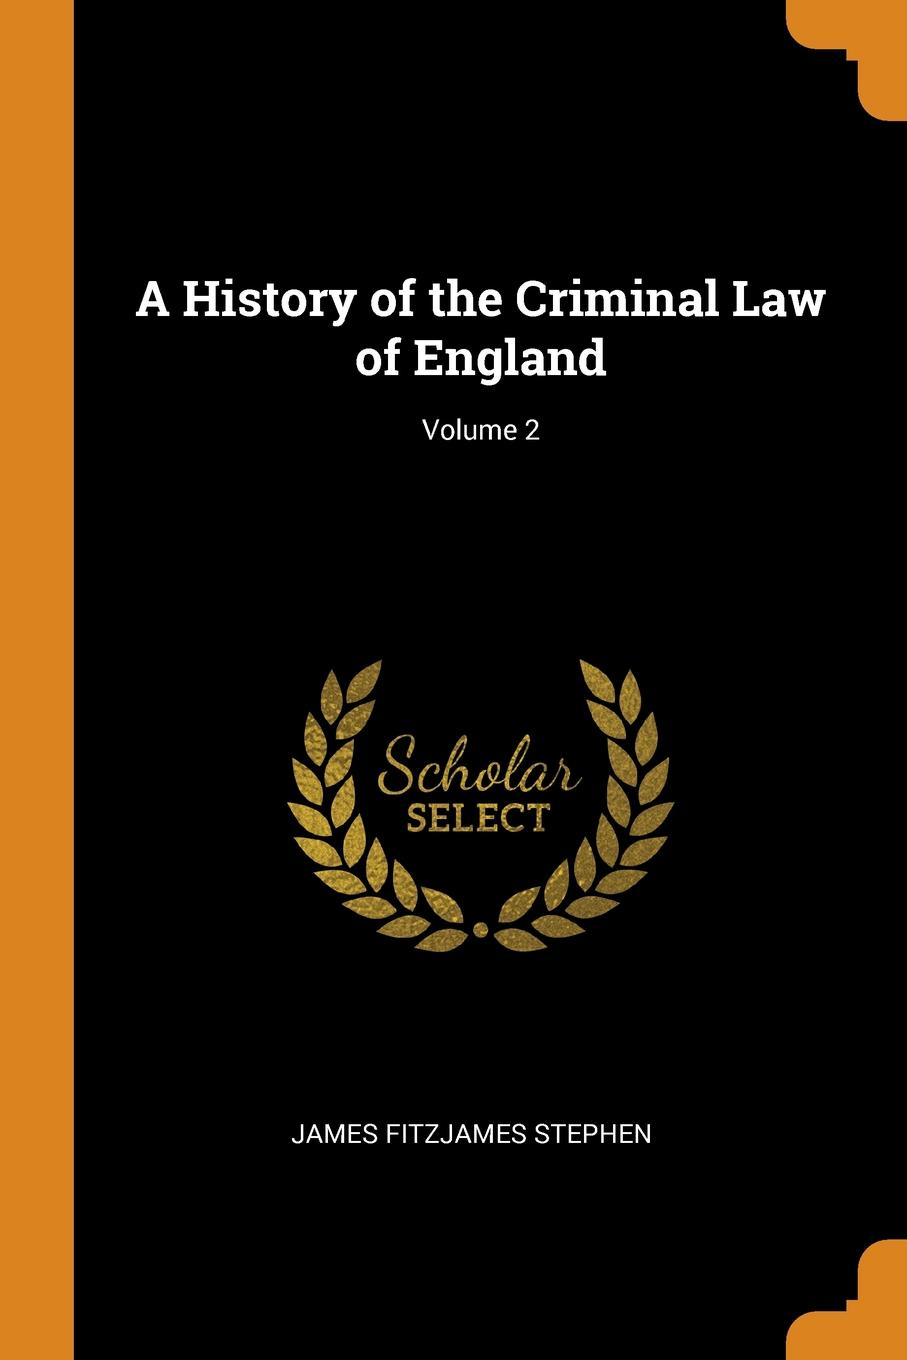 A History of the Criminal Law of England; Volume 2. James Fitzjames Stephen